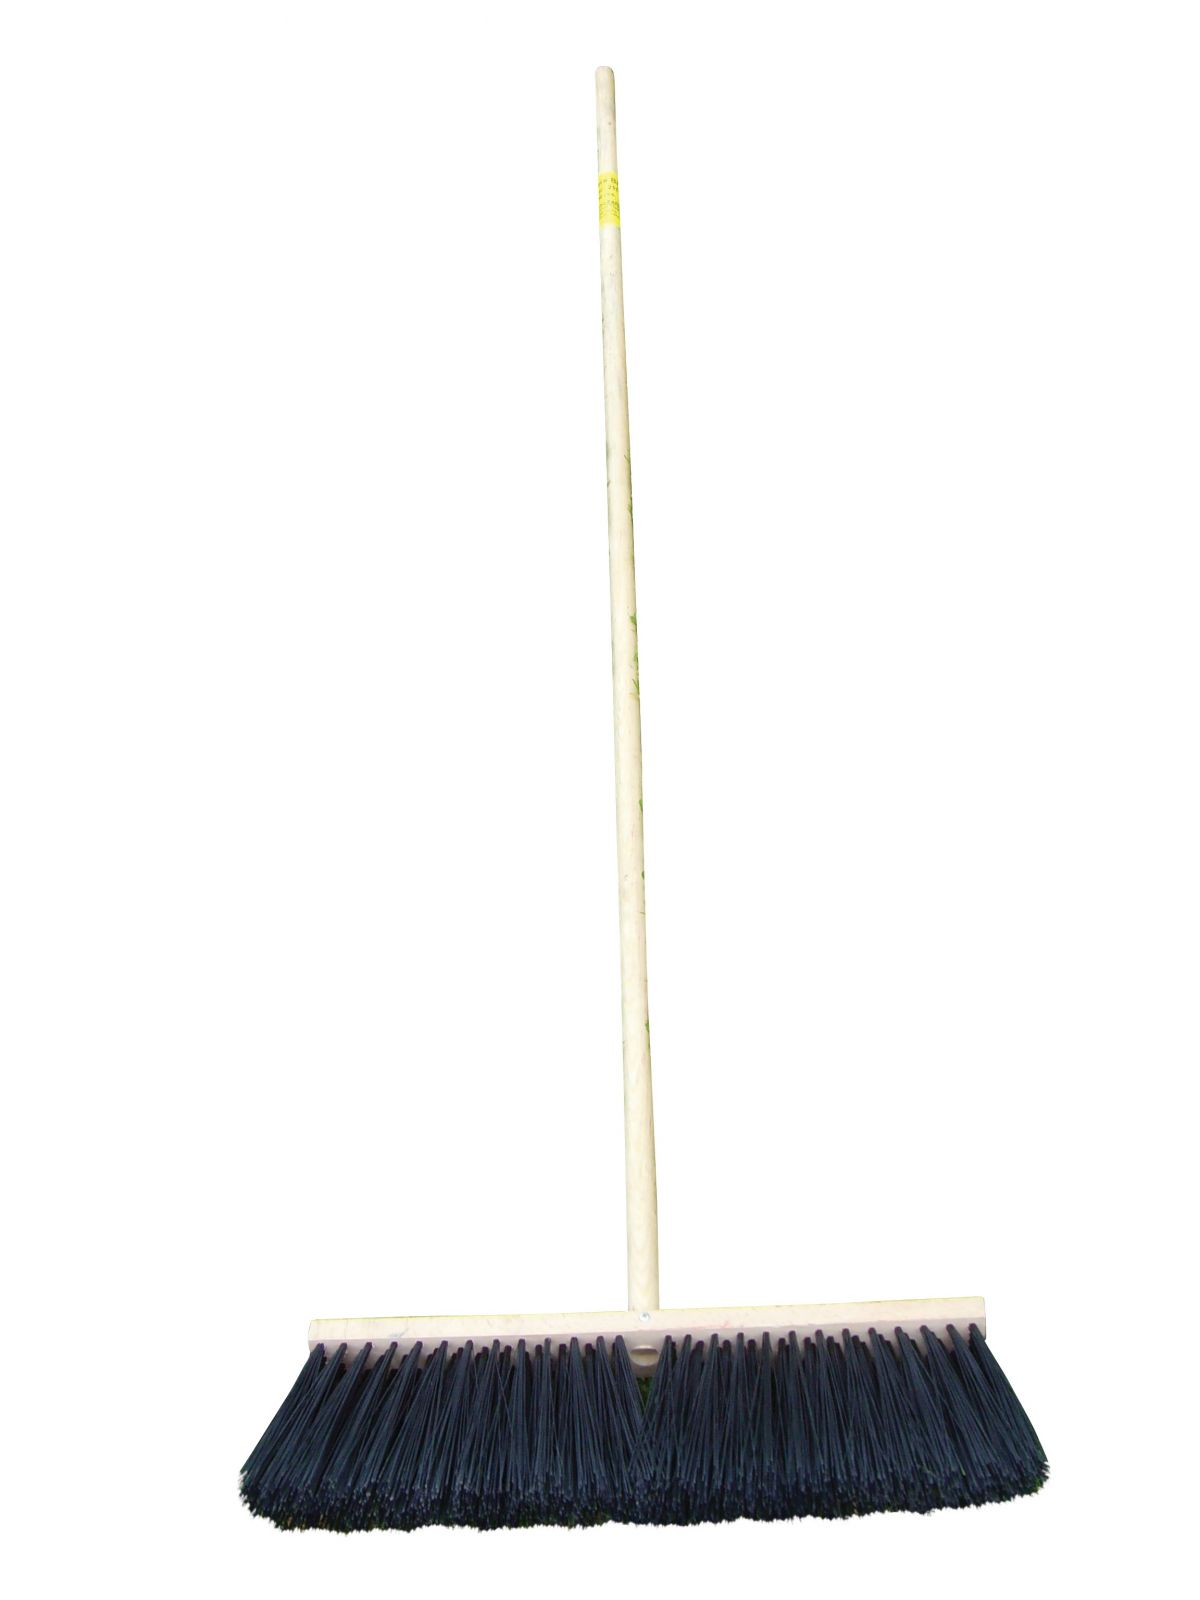 Borstiq Farmers Broom 50cm